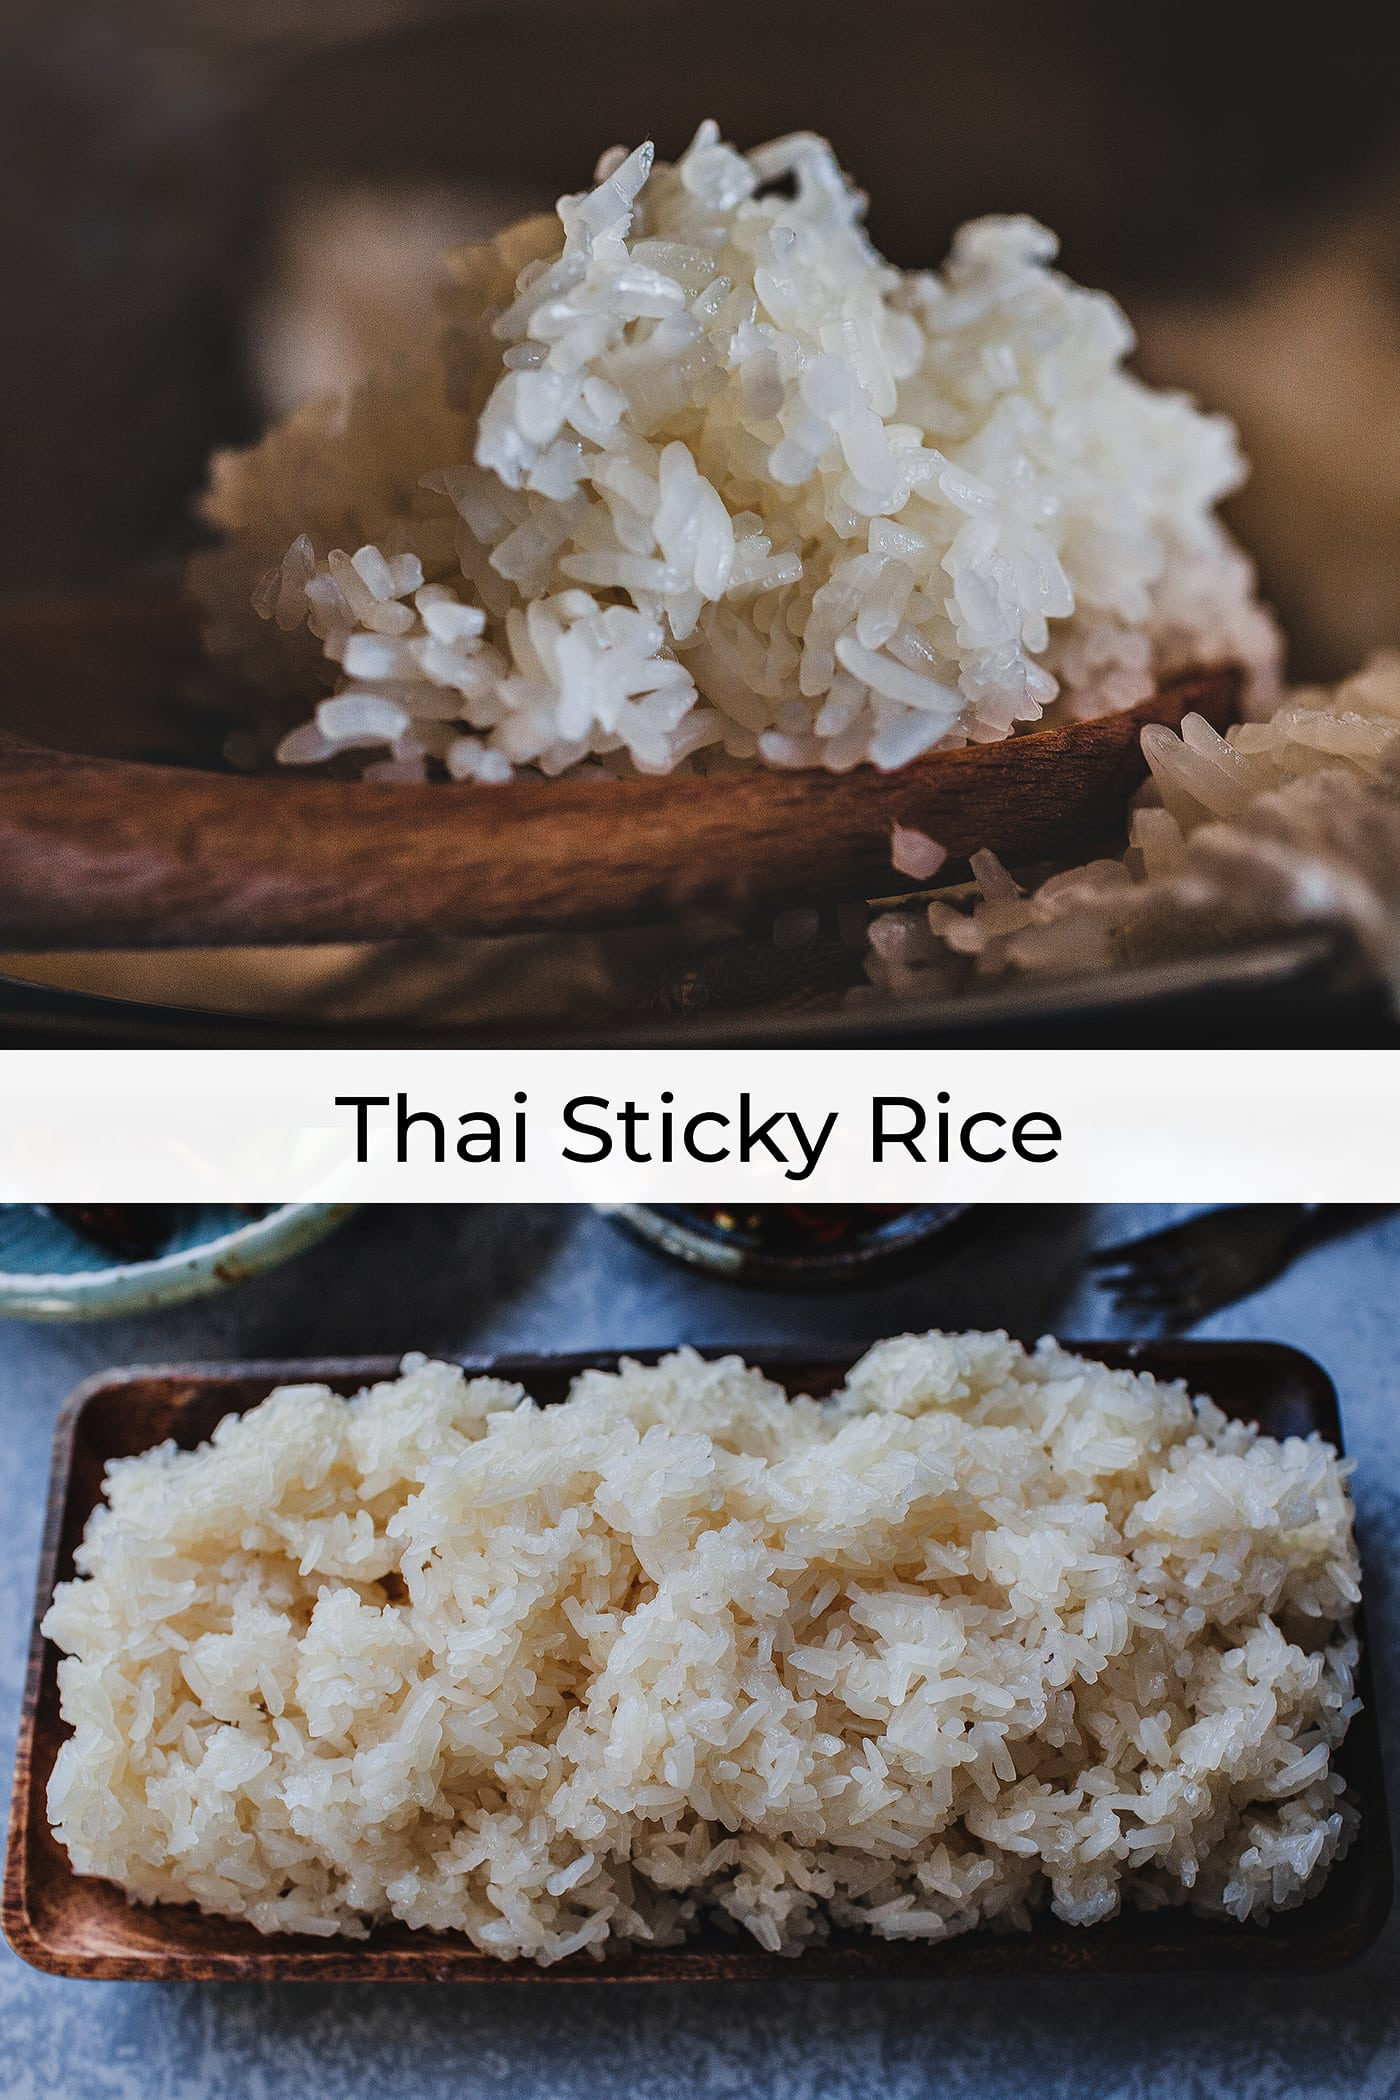 """Thai Sticky Rice also called glutenous rice or sweet rice is a type of rice that requires soaking first for a few hours before being steamed to cook it. The cooked texture is more """"sticky"""" thus the name Sticky Rice. #thaistickyrice #stickyrice #gluetenousrice #thairice"""